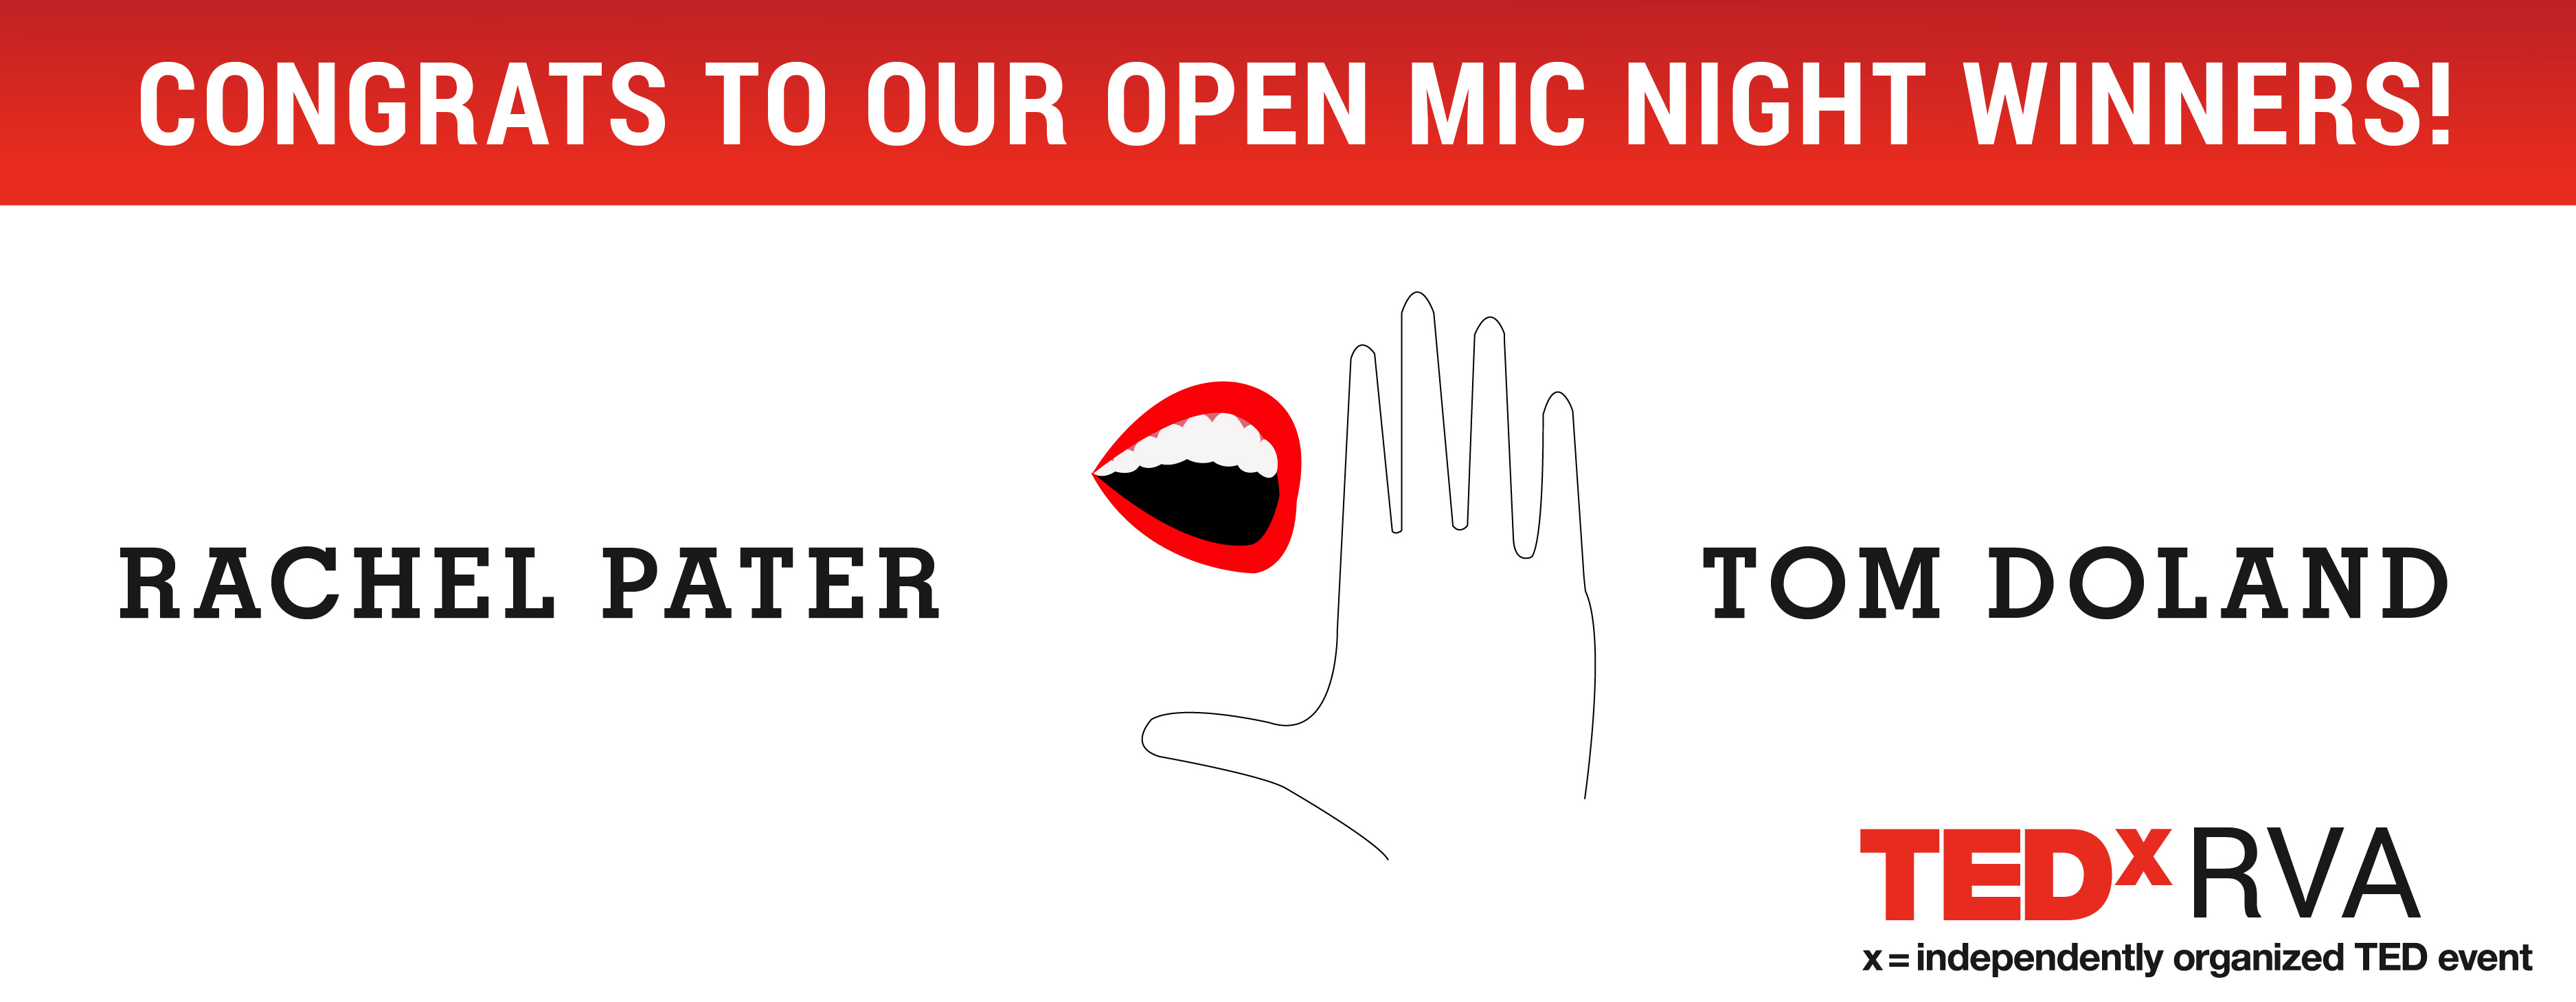 TEDxRVA Open Mic Night March 16 & March 22